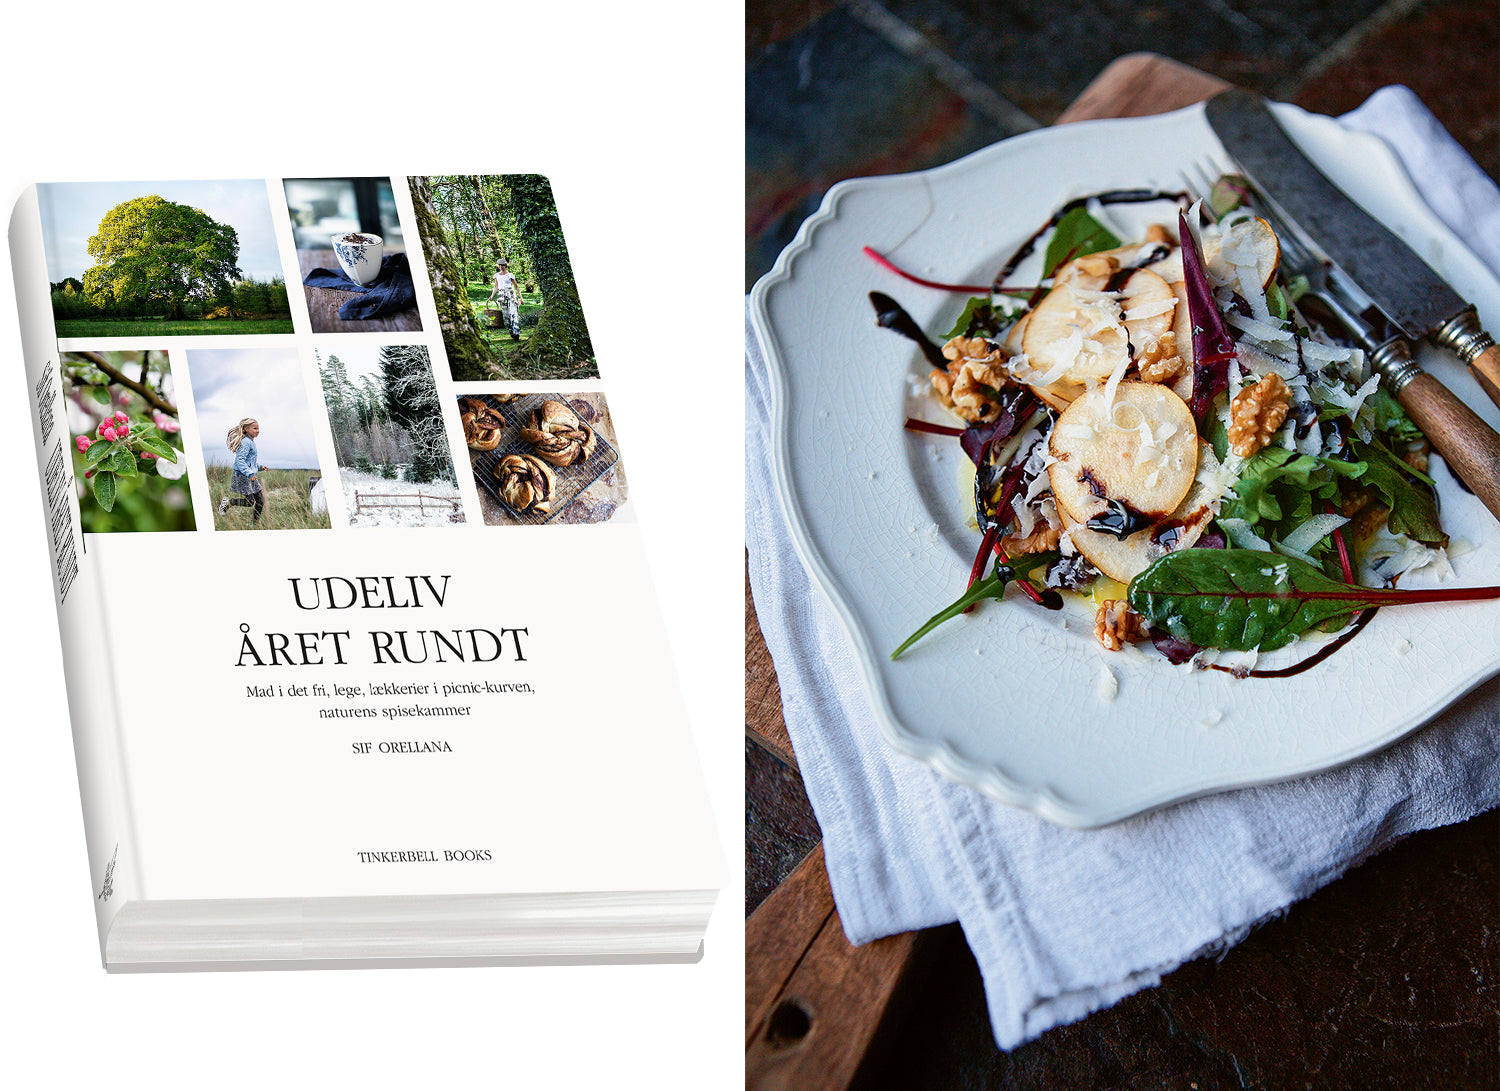 Cookbook | Udeliv året rundt | Danish version | shipped world wide